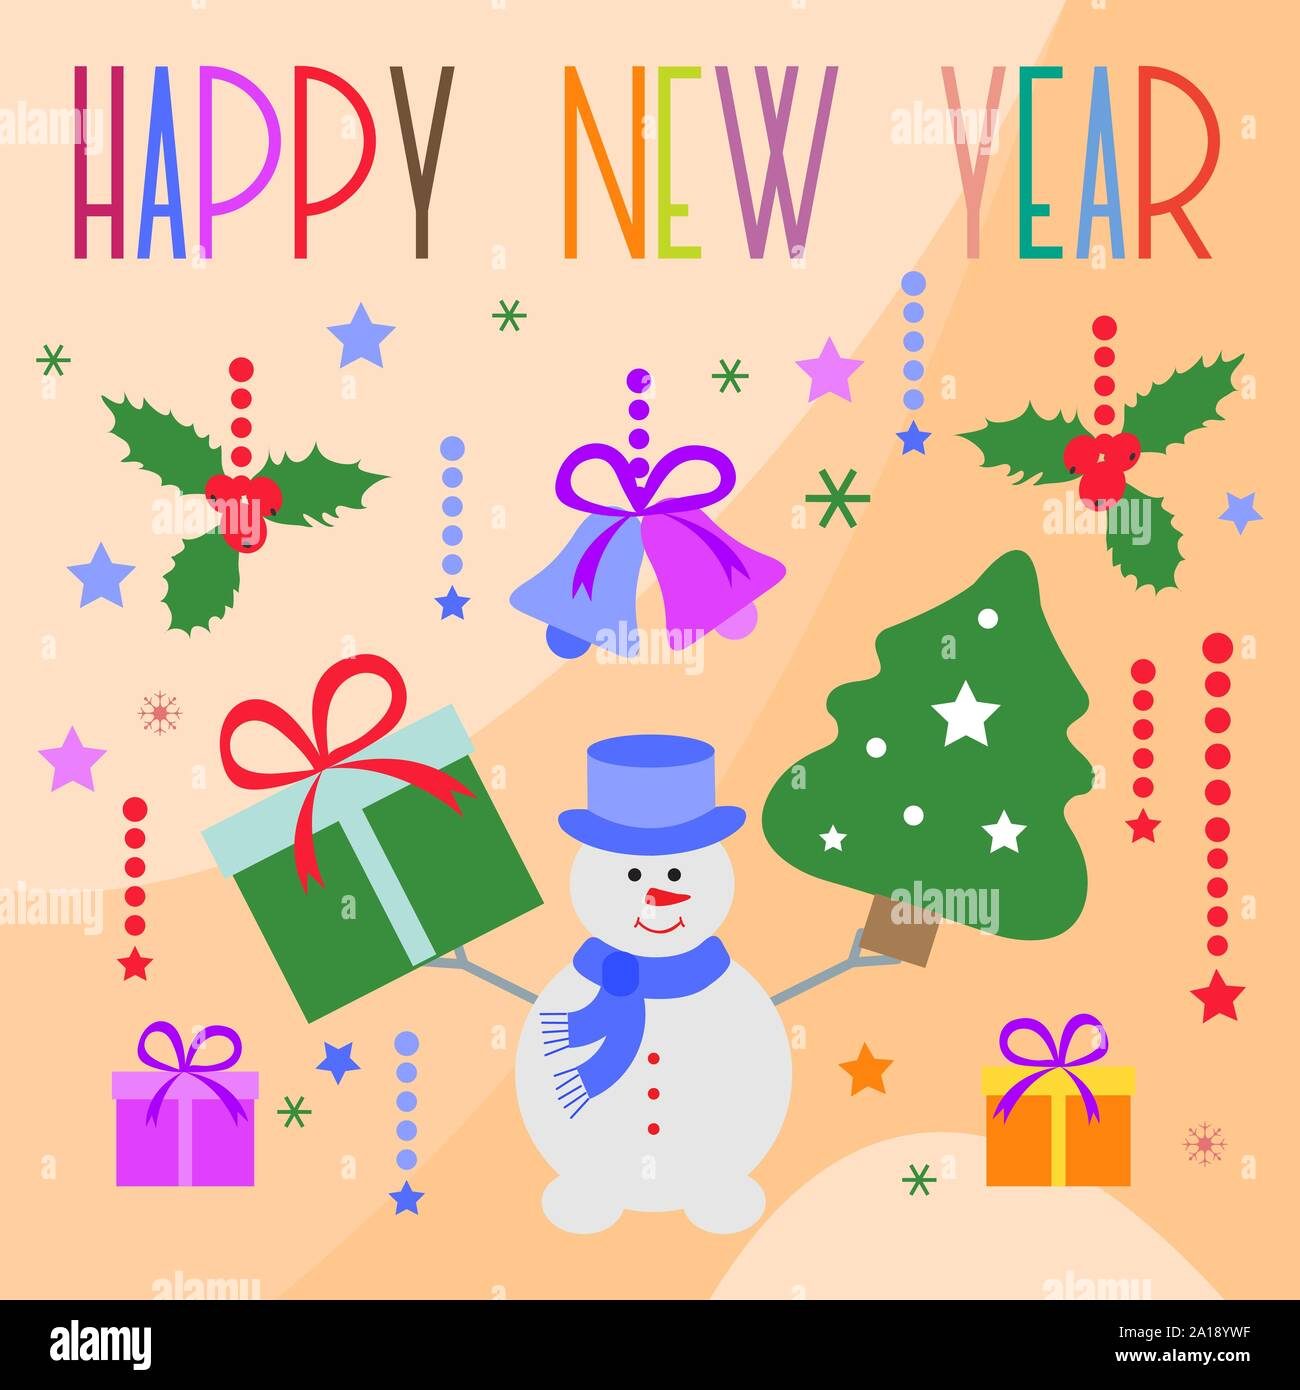 Happy New Year 2020 Merry Christmas Vector Illustration With Snowman Mistletoe Christmas Tree Bells Gifts Design For Poster Card Wrapping Fa Stock Vector Image Art Alamy